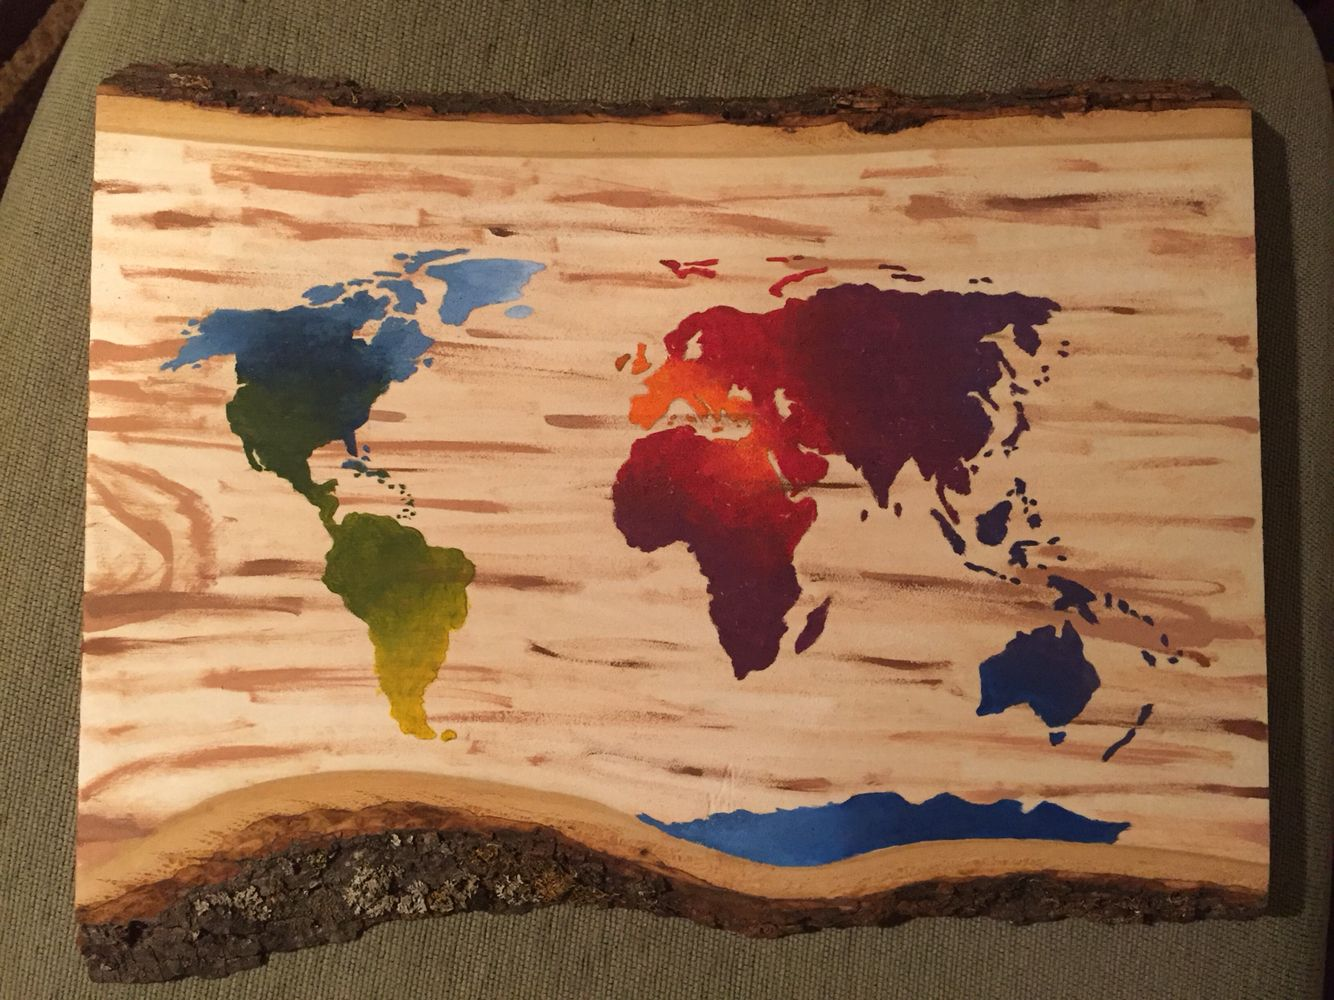 World map outline stencil painting on wood art gallery pinterest world map outline stencil painting on wood gumiabroncs Image collections